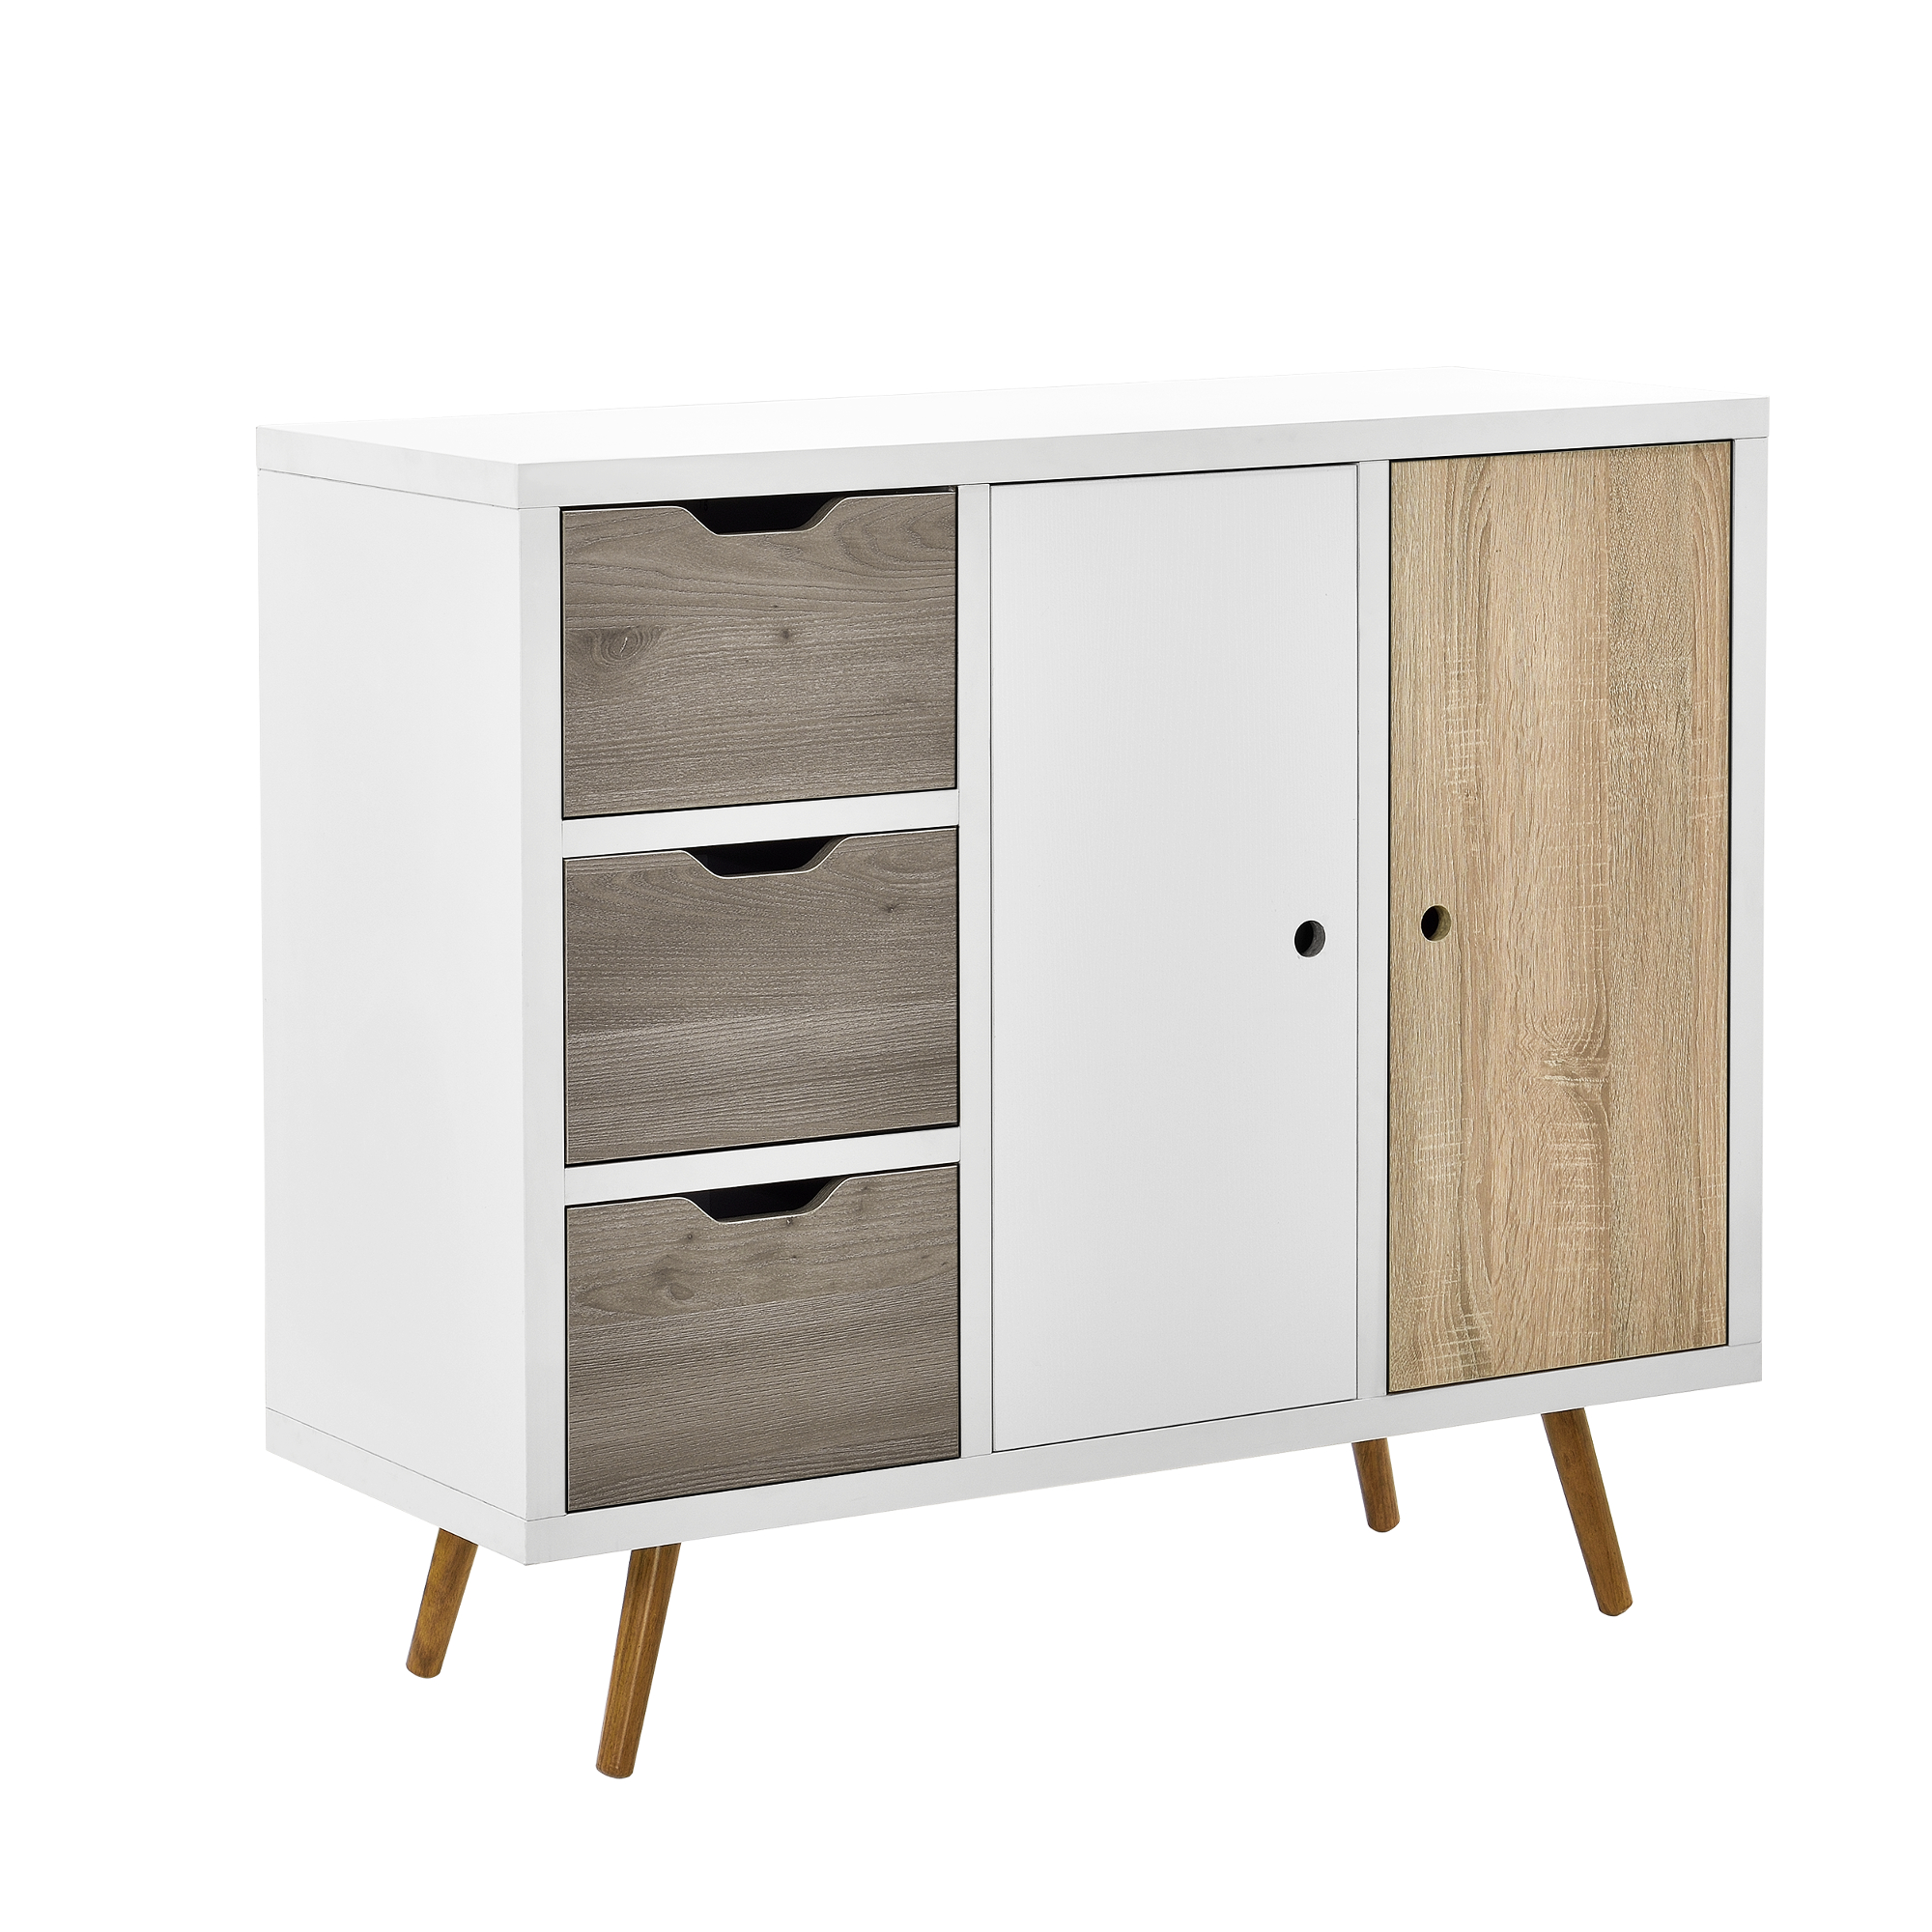 design kommode wei eiche anrichte sideboard schrank regal schubladen ebay. Black Bedroom Furniture Sets. Home Design Ideas